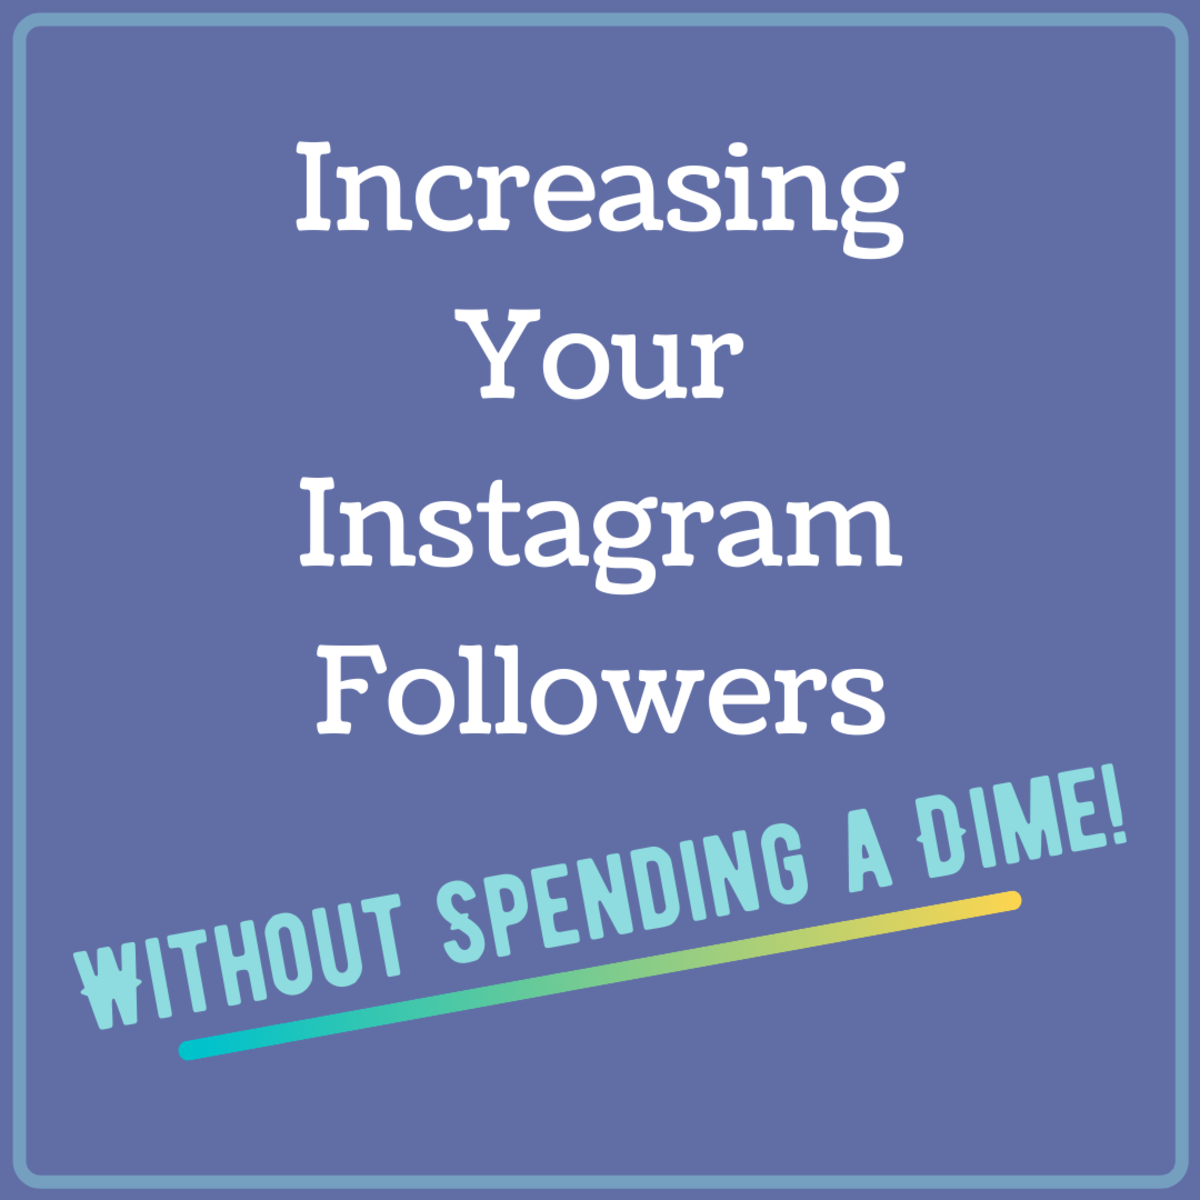 How to Increase Your Instagram Followers for Free